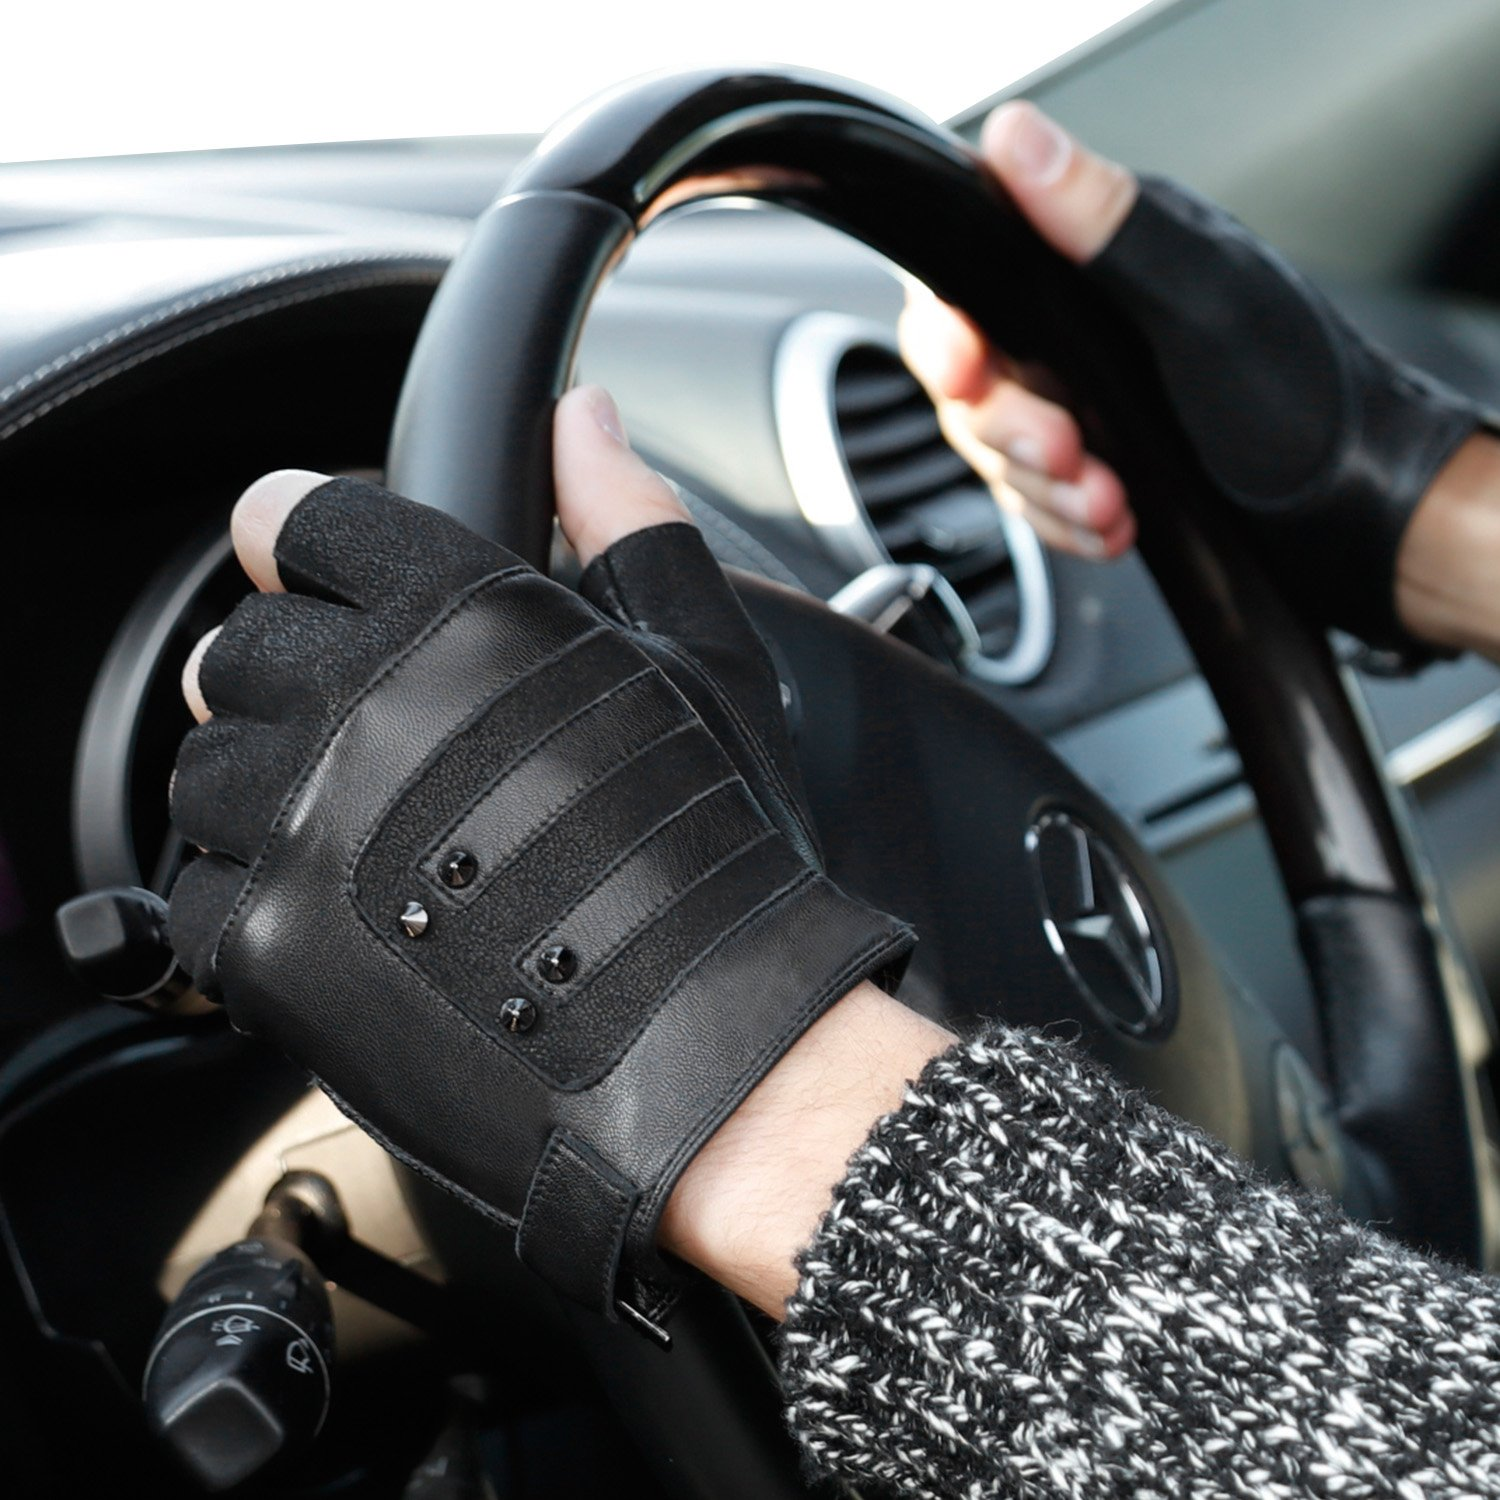 Fioretto 10% OFF Gifts 2018 Mens Fingerless Gloves Italian Genuine Goatskin Leather Half Finger Men Driving Leather Gloves Unlined with Rivets Punk Rock Style Black 10.5